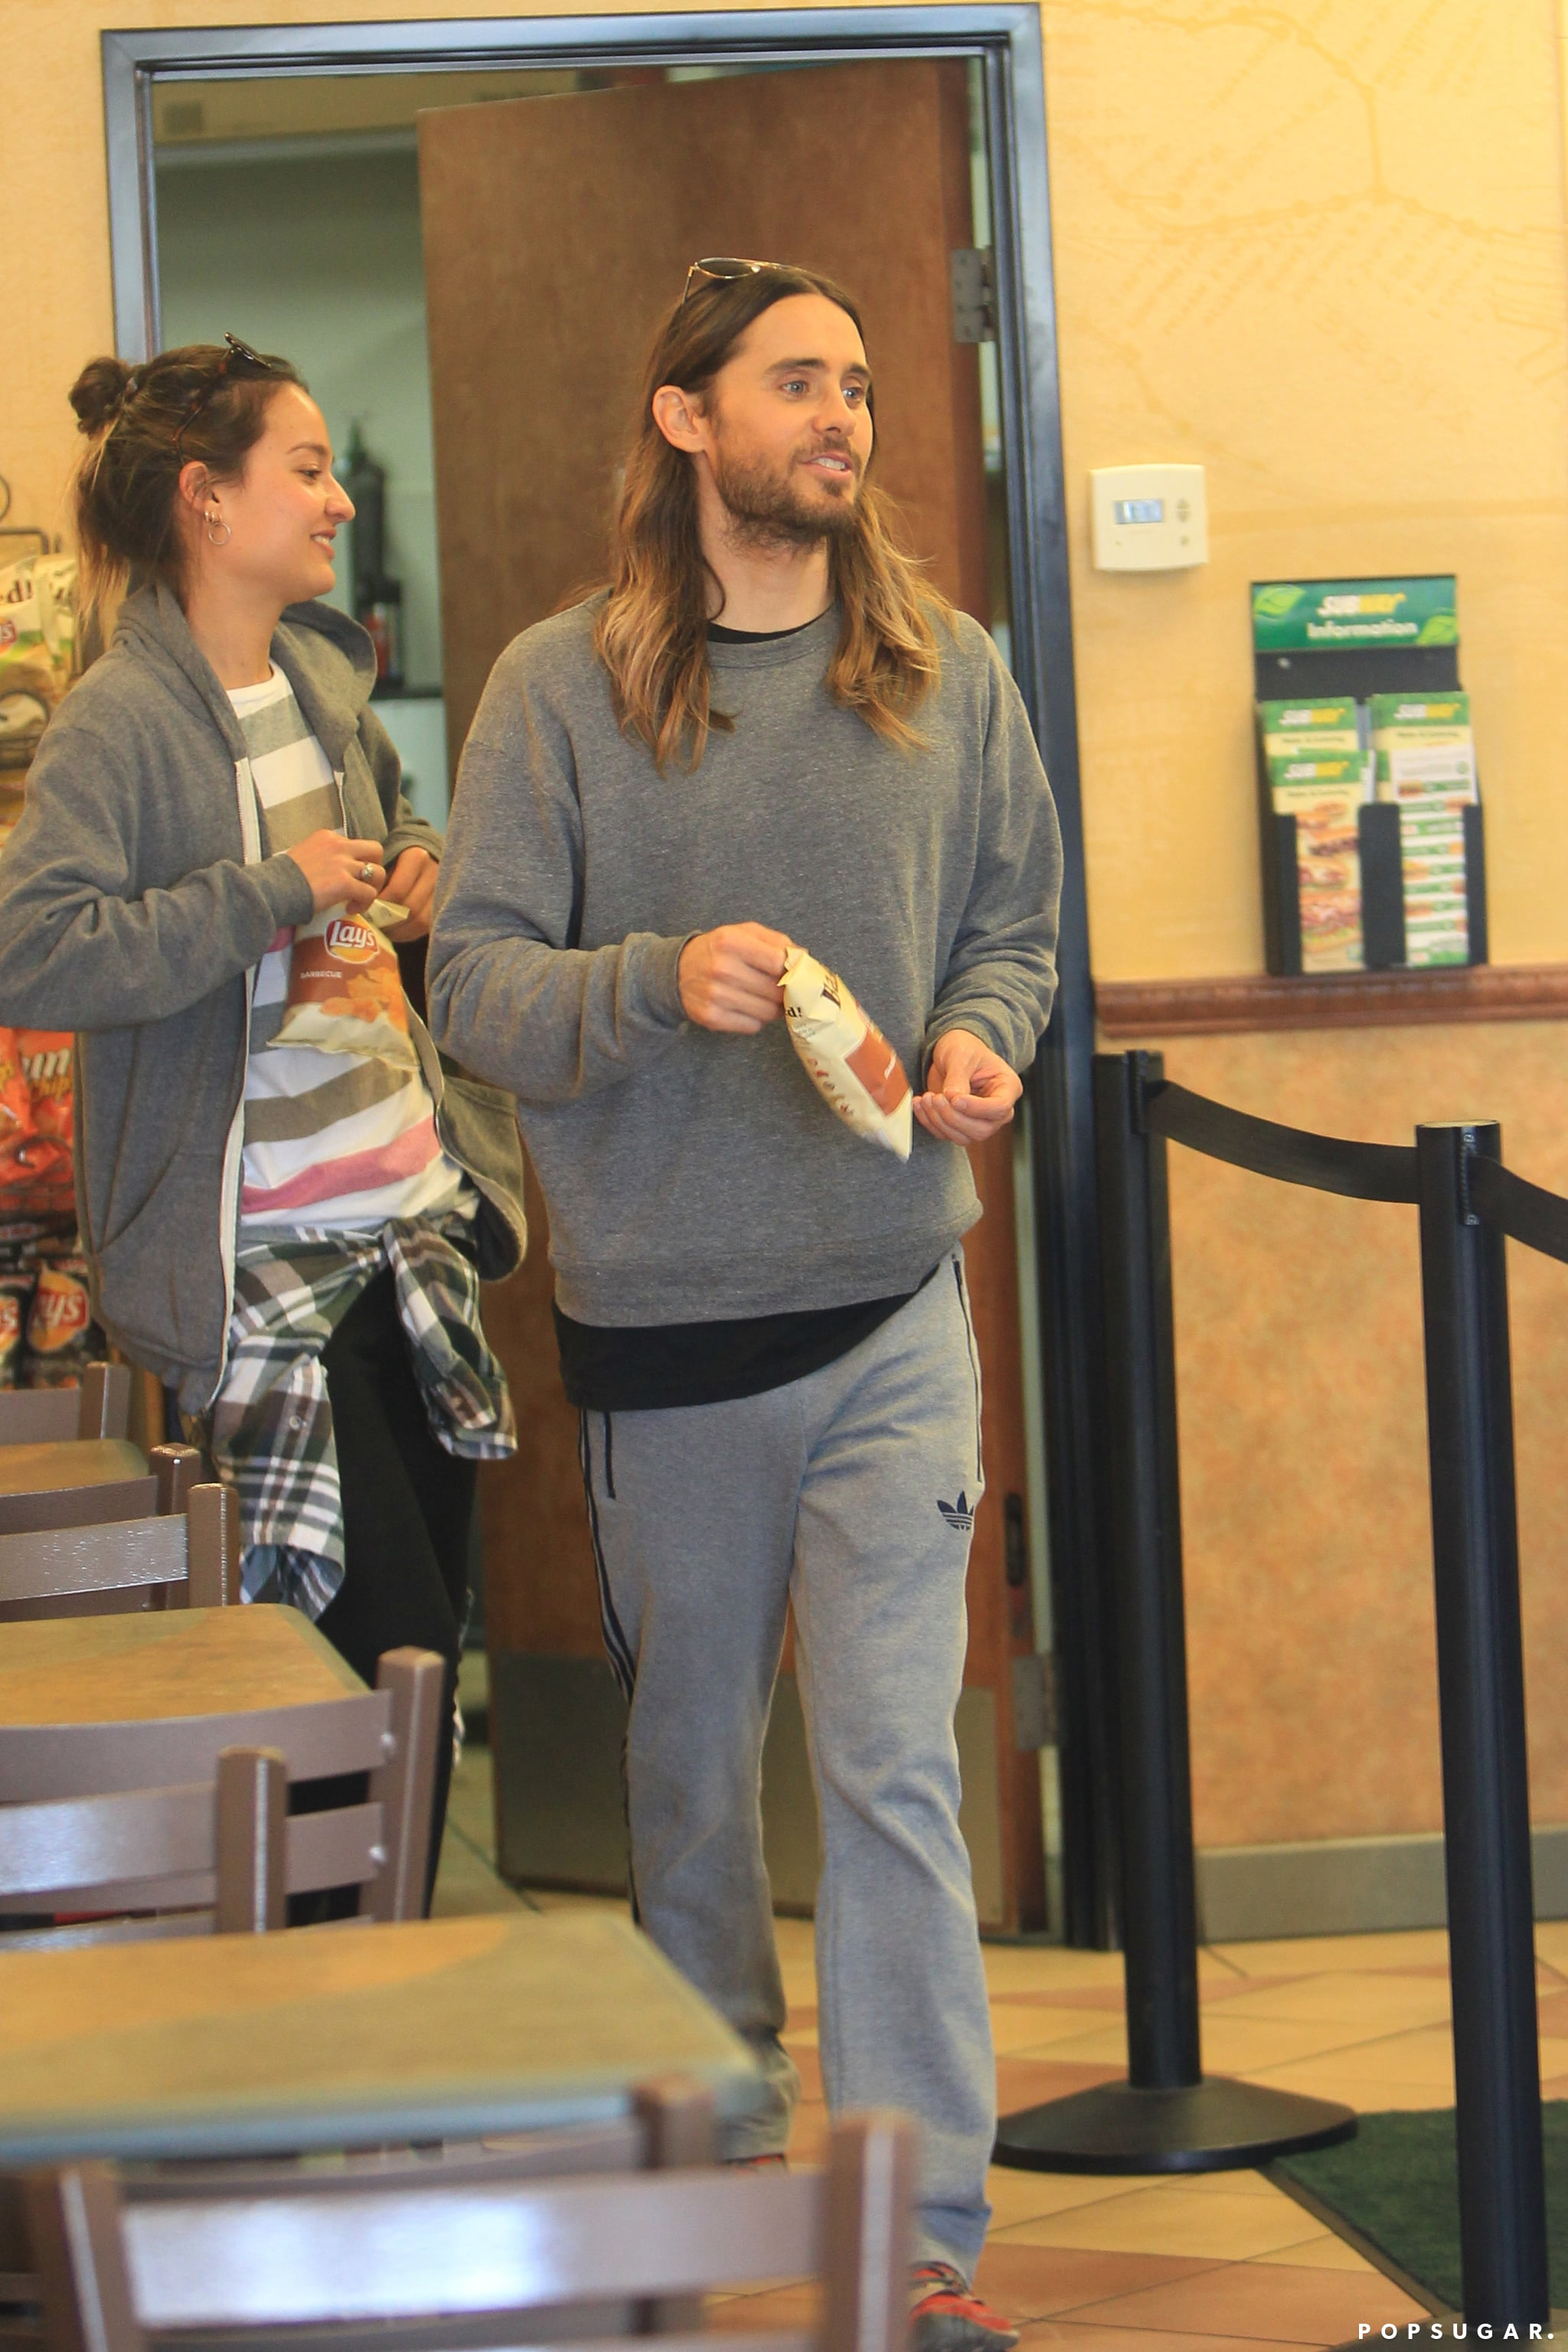 Jared Leto's Hangover Cure? Baked Lays and Subway!